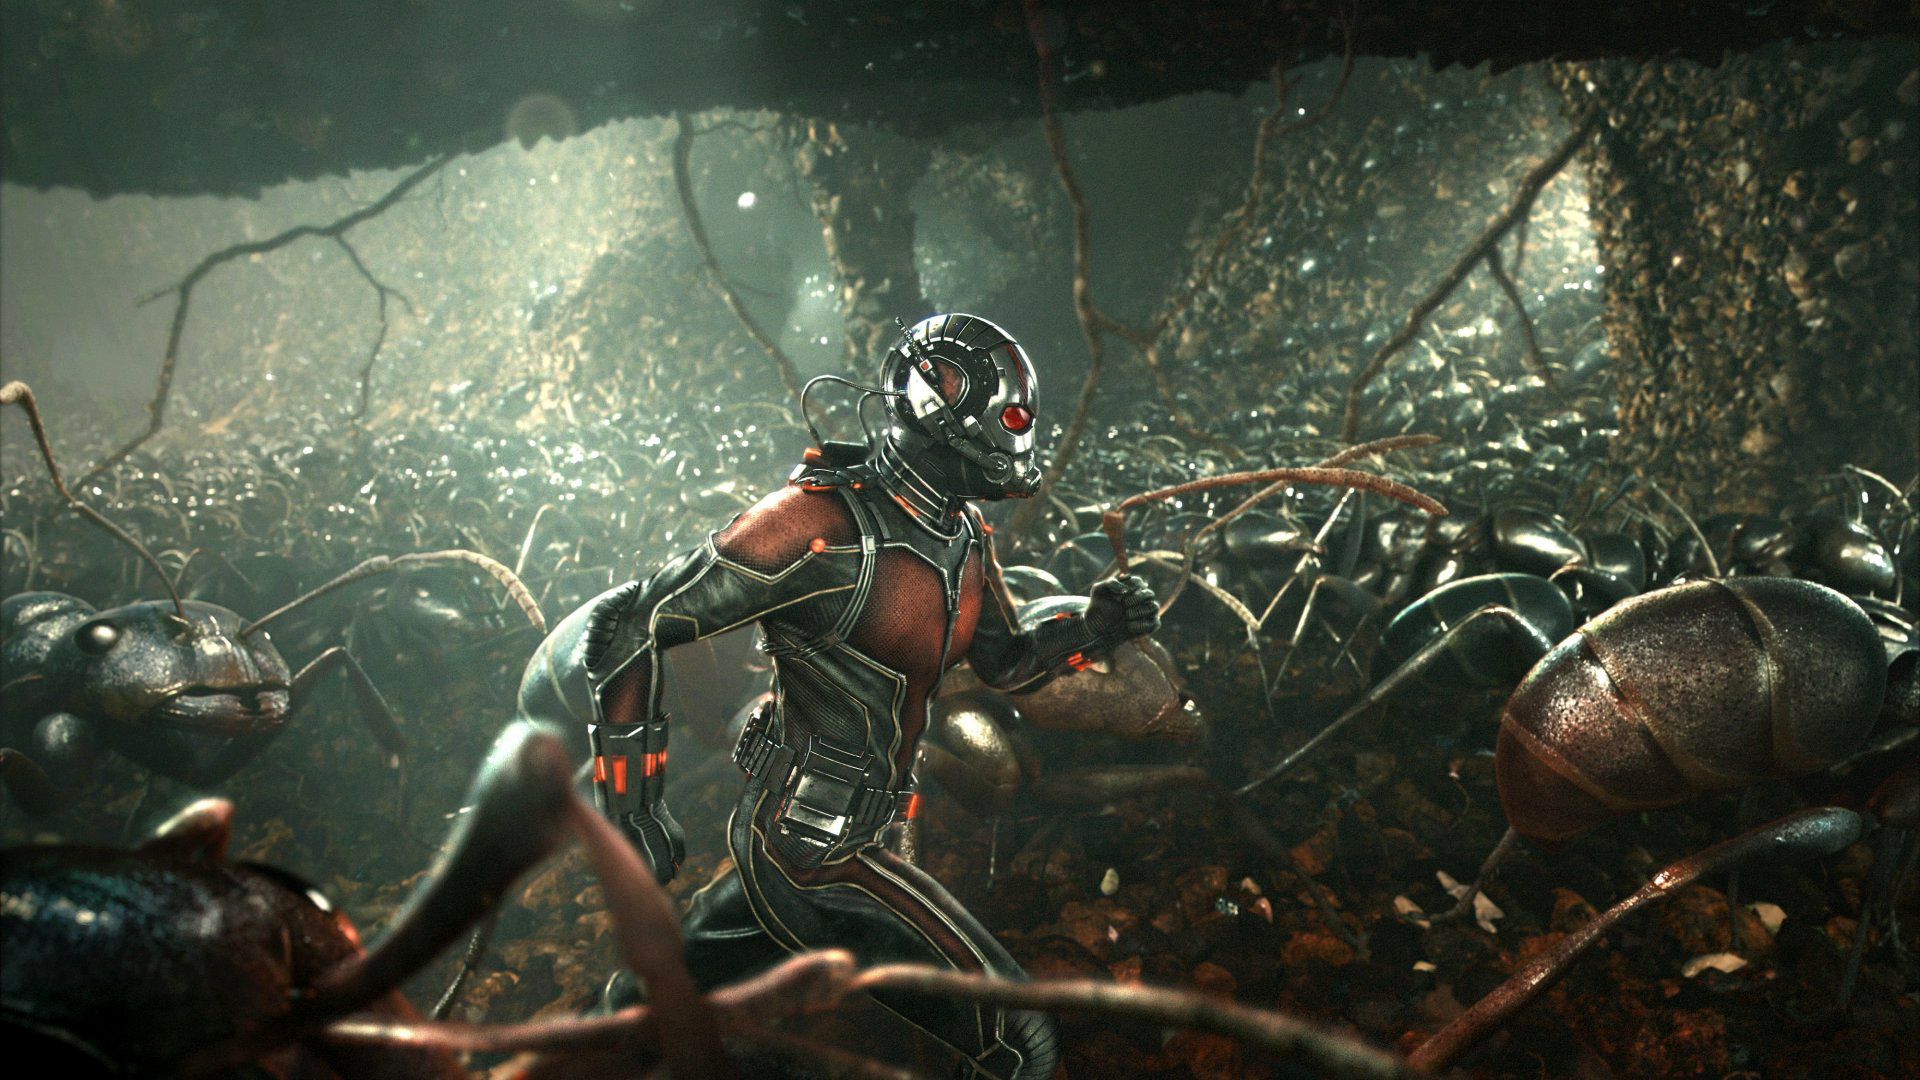 Ant man wallpapers pictures images - Man wallpaper ...